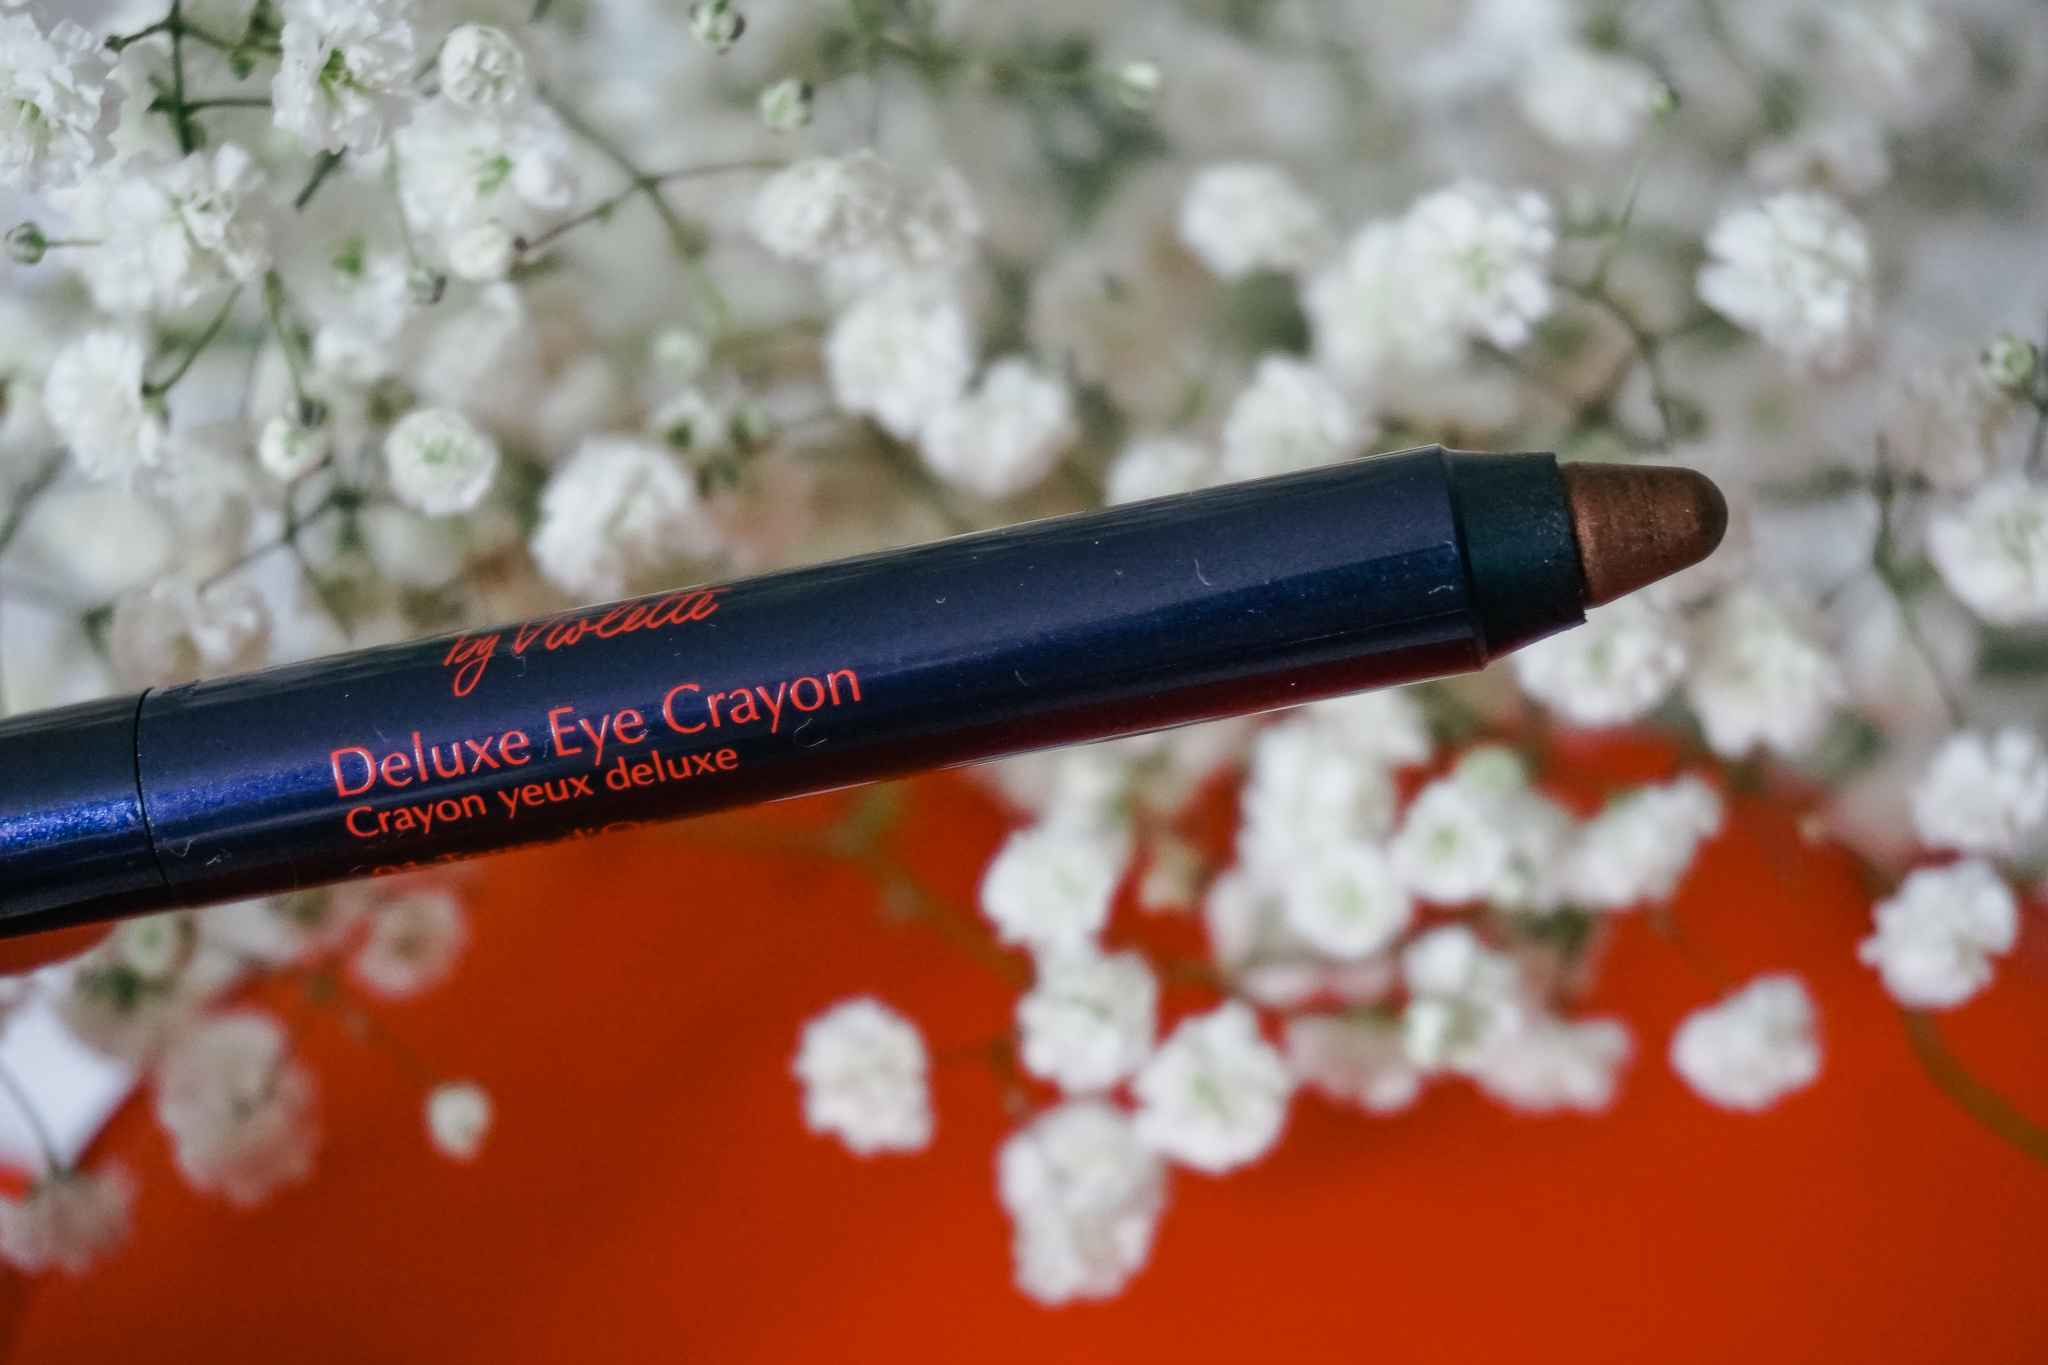 Deluxe Eye Crayon By Violette